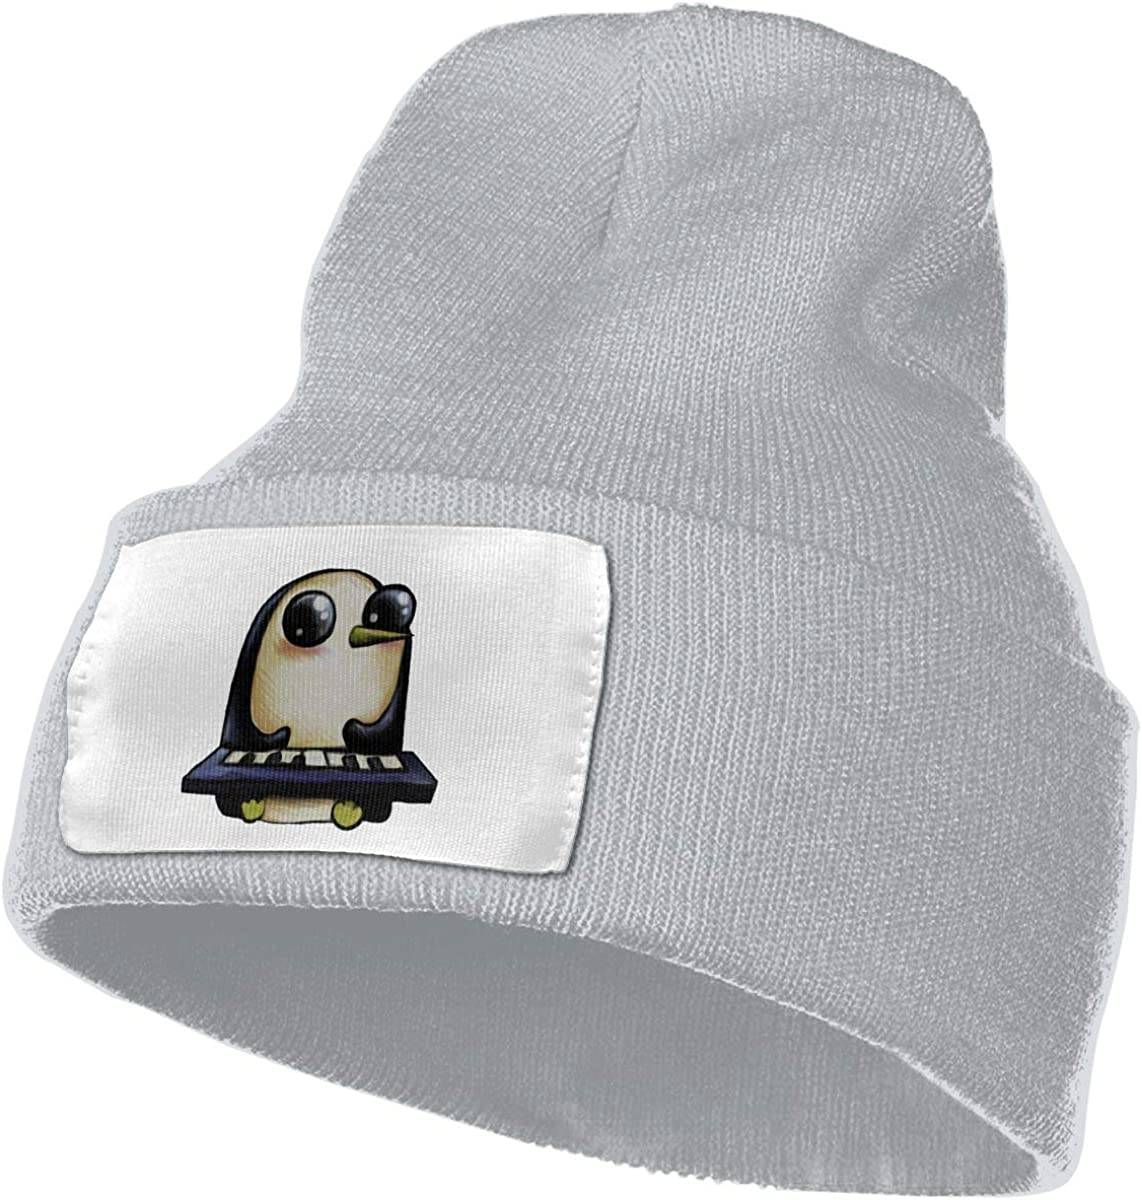 Adults Play Piano Penguin Elastic Knitted Beanie Cap Winter Warm Skull Hats